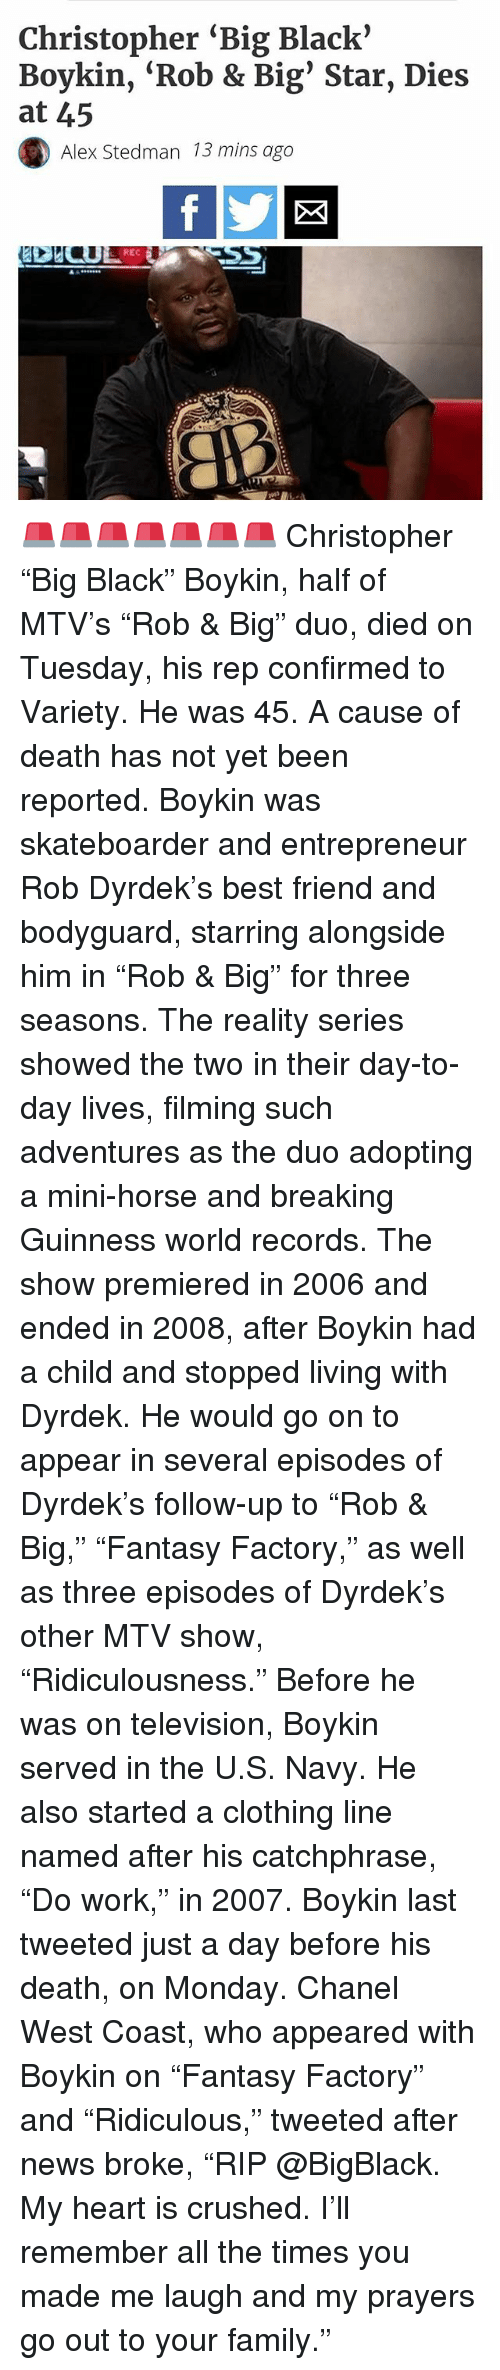 """Rob Big: Christopher """"Big Black'  Boykin, 'Rob & Big Star, Dies  at 45  Alex Stedman 13 mins ago  REC 🚨🚨🚨🚨🚨🚨🚨 Christopher """"Big Black"""" Boykin, half of MTV's """"Rob & Big"""" duo, died on Tuesday, his rep confirmed to Variety. He was 45. A cause of death has not yet been reported. Boykin was skateboarder and entrepreneur Rob Dyrdek's best friend and bodyguard, starring alongside him in """"Rob & Big"""" for three seasons. The reality series showed the two in their day-to-day lives, filming such adventures as the duo adopting a mini-horse and breaking Guinness world records. The show premiered in 2006 and ended in 2008, after Boykin had a child and stopped living with Dyrdek. He would go on to appear in several episodes of Dyrdek's follow-up to """"Rob & Big,"""" """"Fantasy Factory,"""" as well as three episodes of Dyrdek's other MTV show, """"Ridiculousness."""" Before he was on television, Boykin served in the U.S. Navy. He also started a clothing line named after his catchphrase, """"Do work,"""" in 2007. Boykin last tweeted just a day before his death, on Monday. Chanel West Coast, who appeared with Boykin on """"Fantasy Factory"""" and """"Ridiculous,"""" tweeted after news broke, """"RIP @BigBlack. My heart is crushed. I'll remember all the times you made me laugh and my prayers go out to your family."""""""